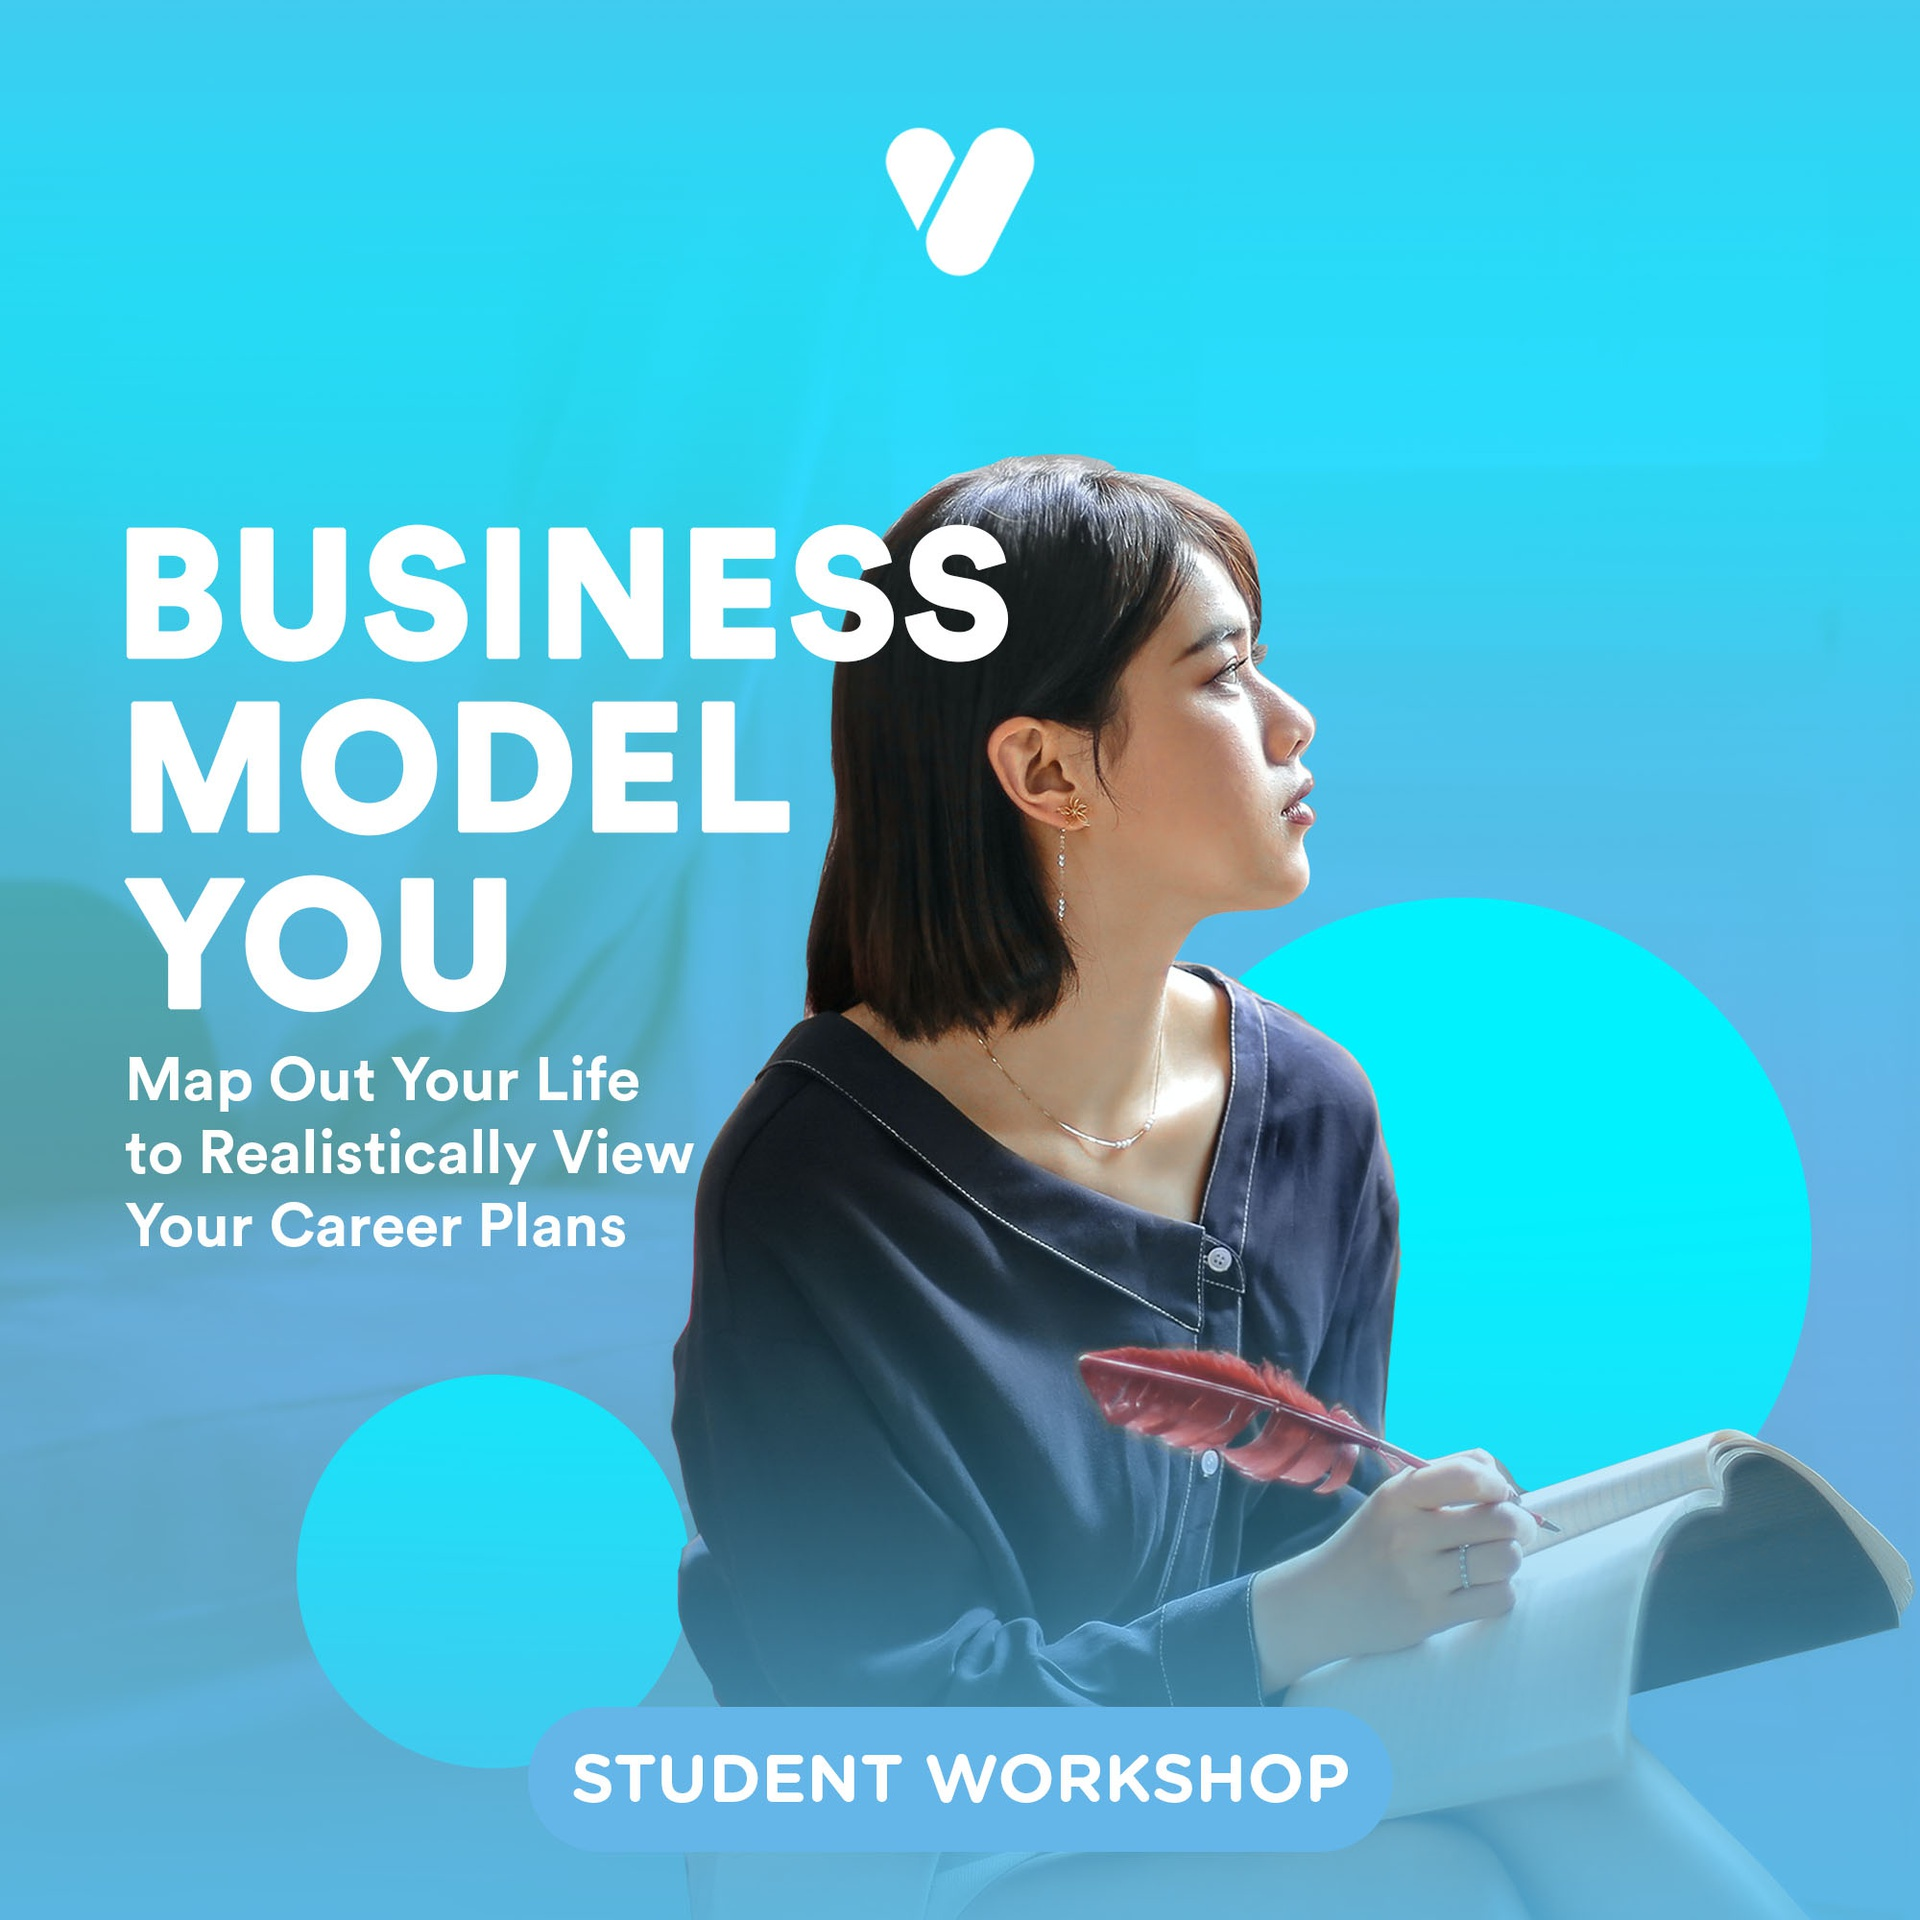 Business Model You: Map out Your Life to Realistically View Your Career Plans